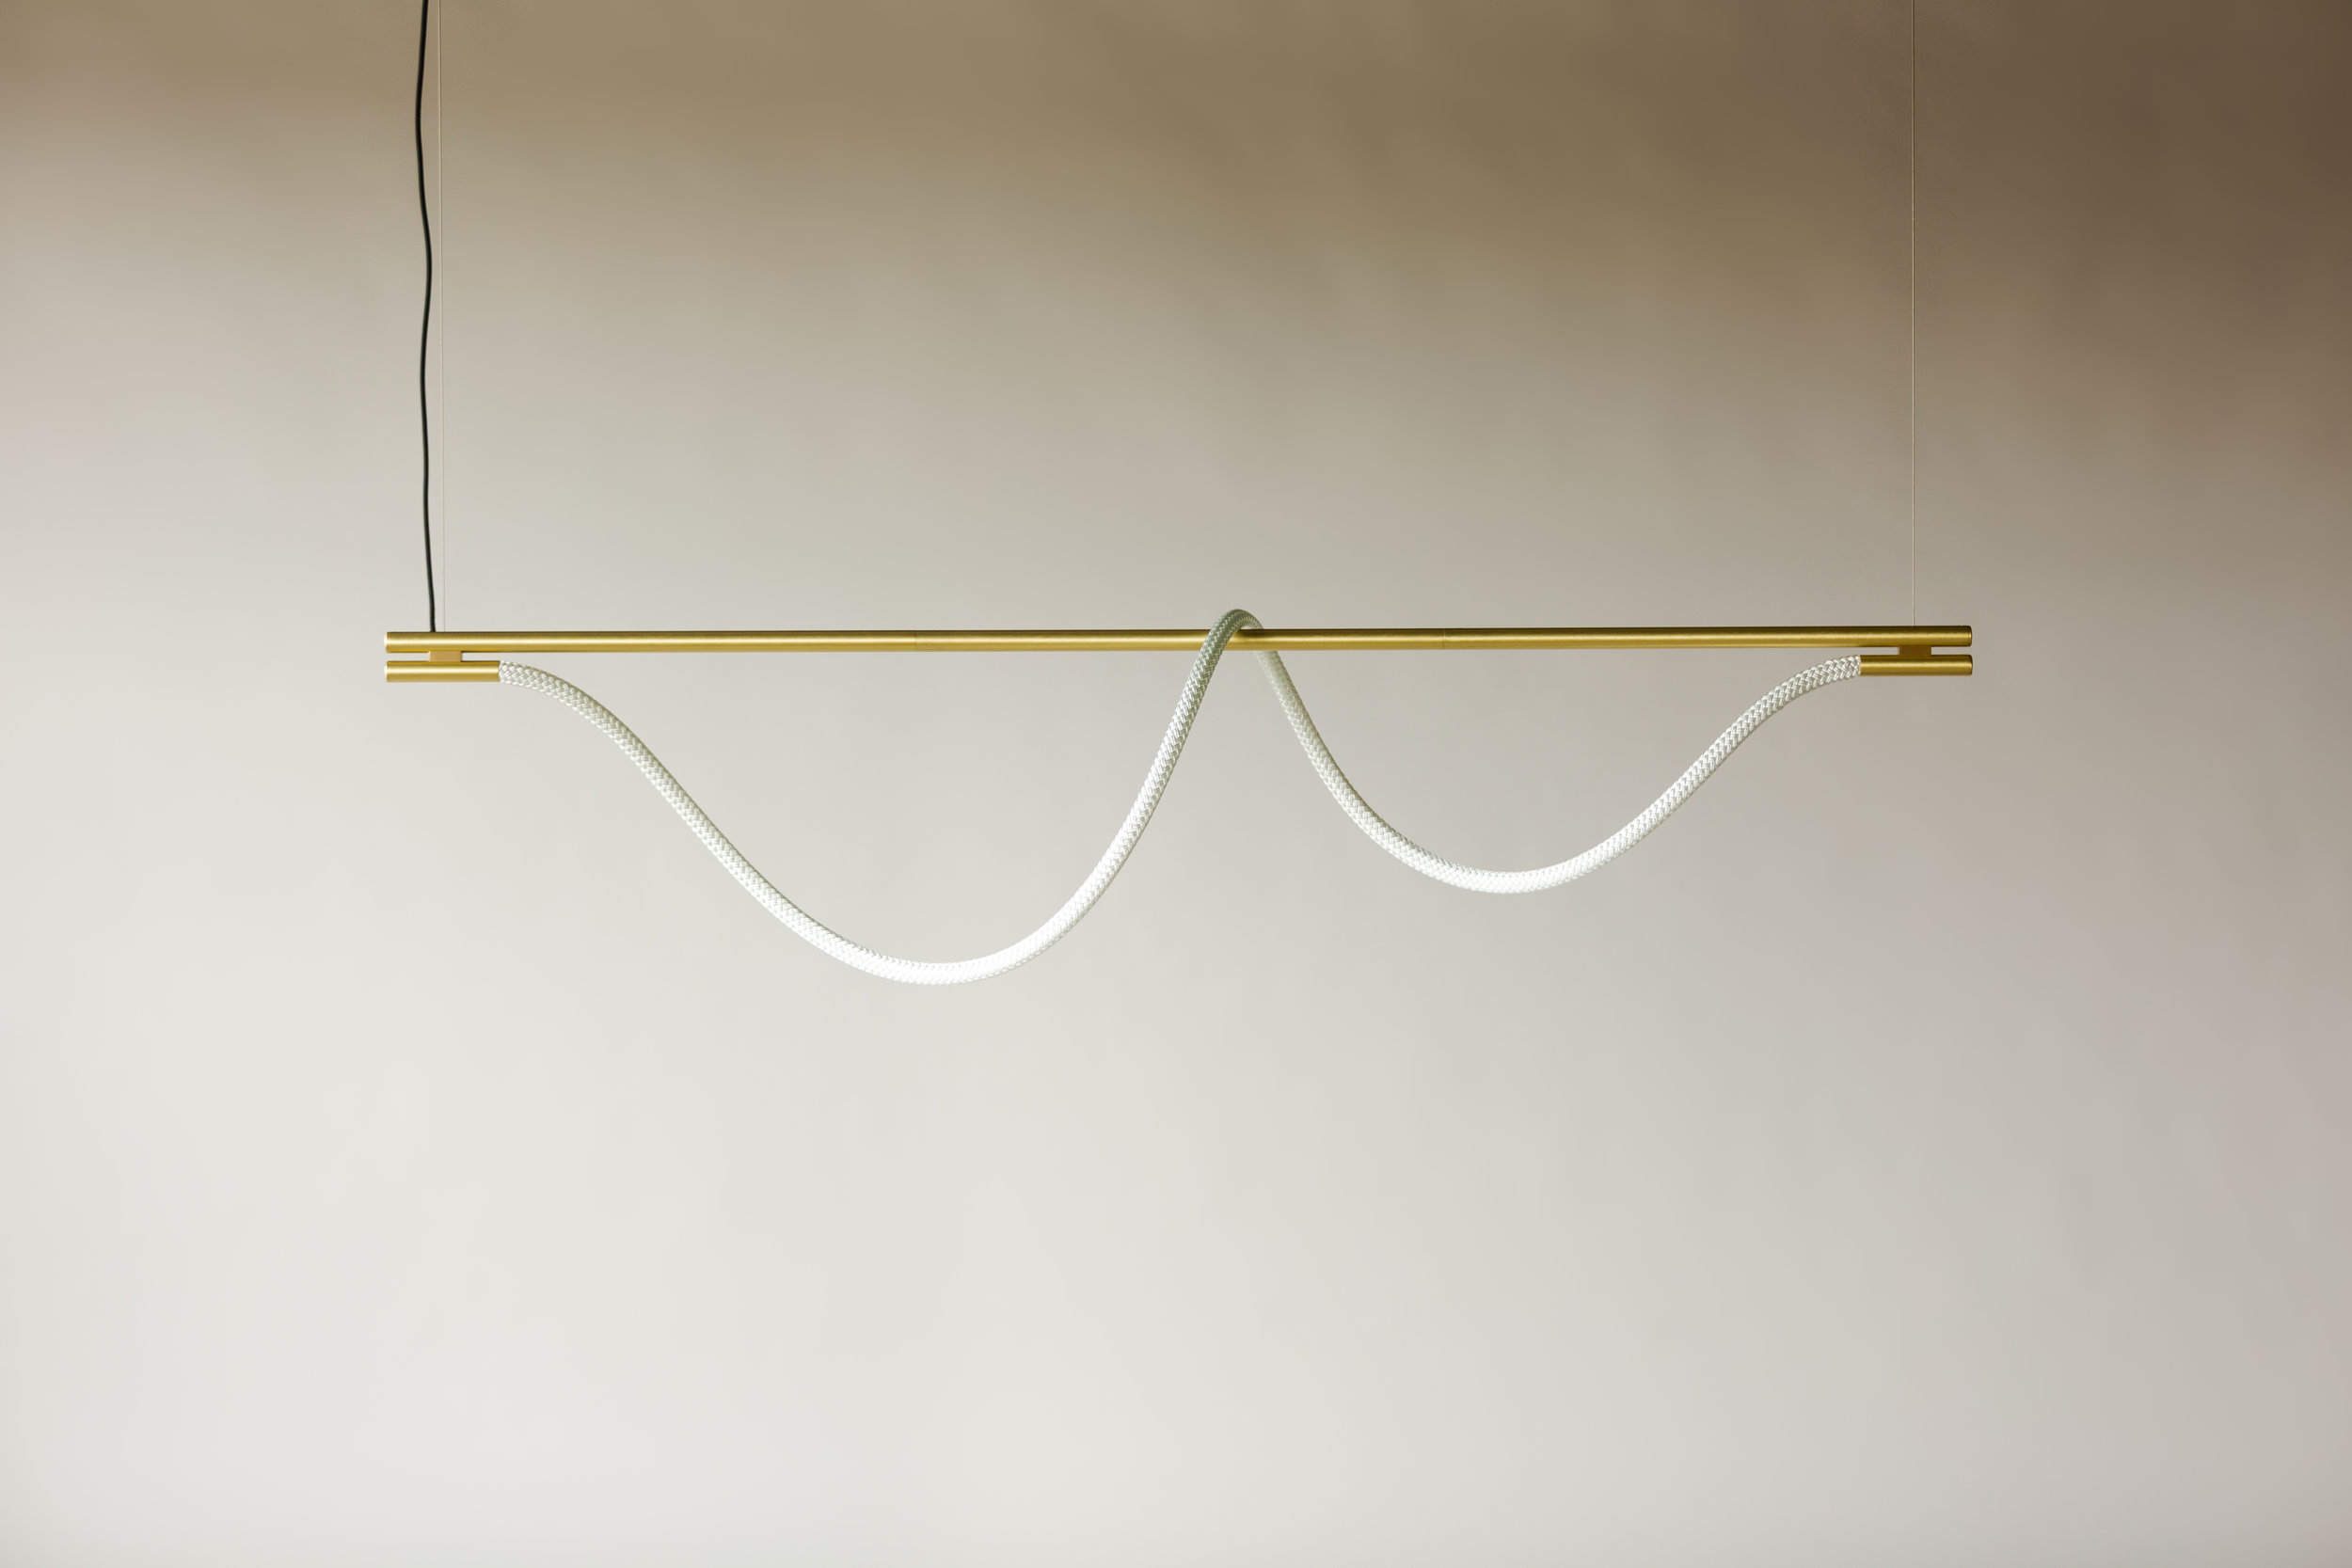 6' Surrey Suspension II - Cable  (pictured in Satin Brass / turned off)